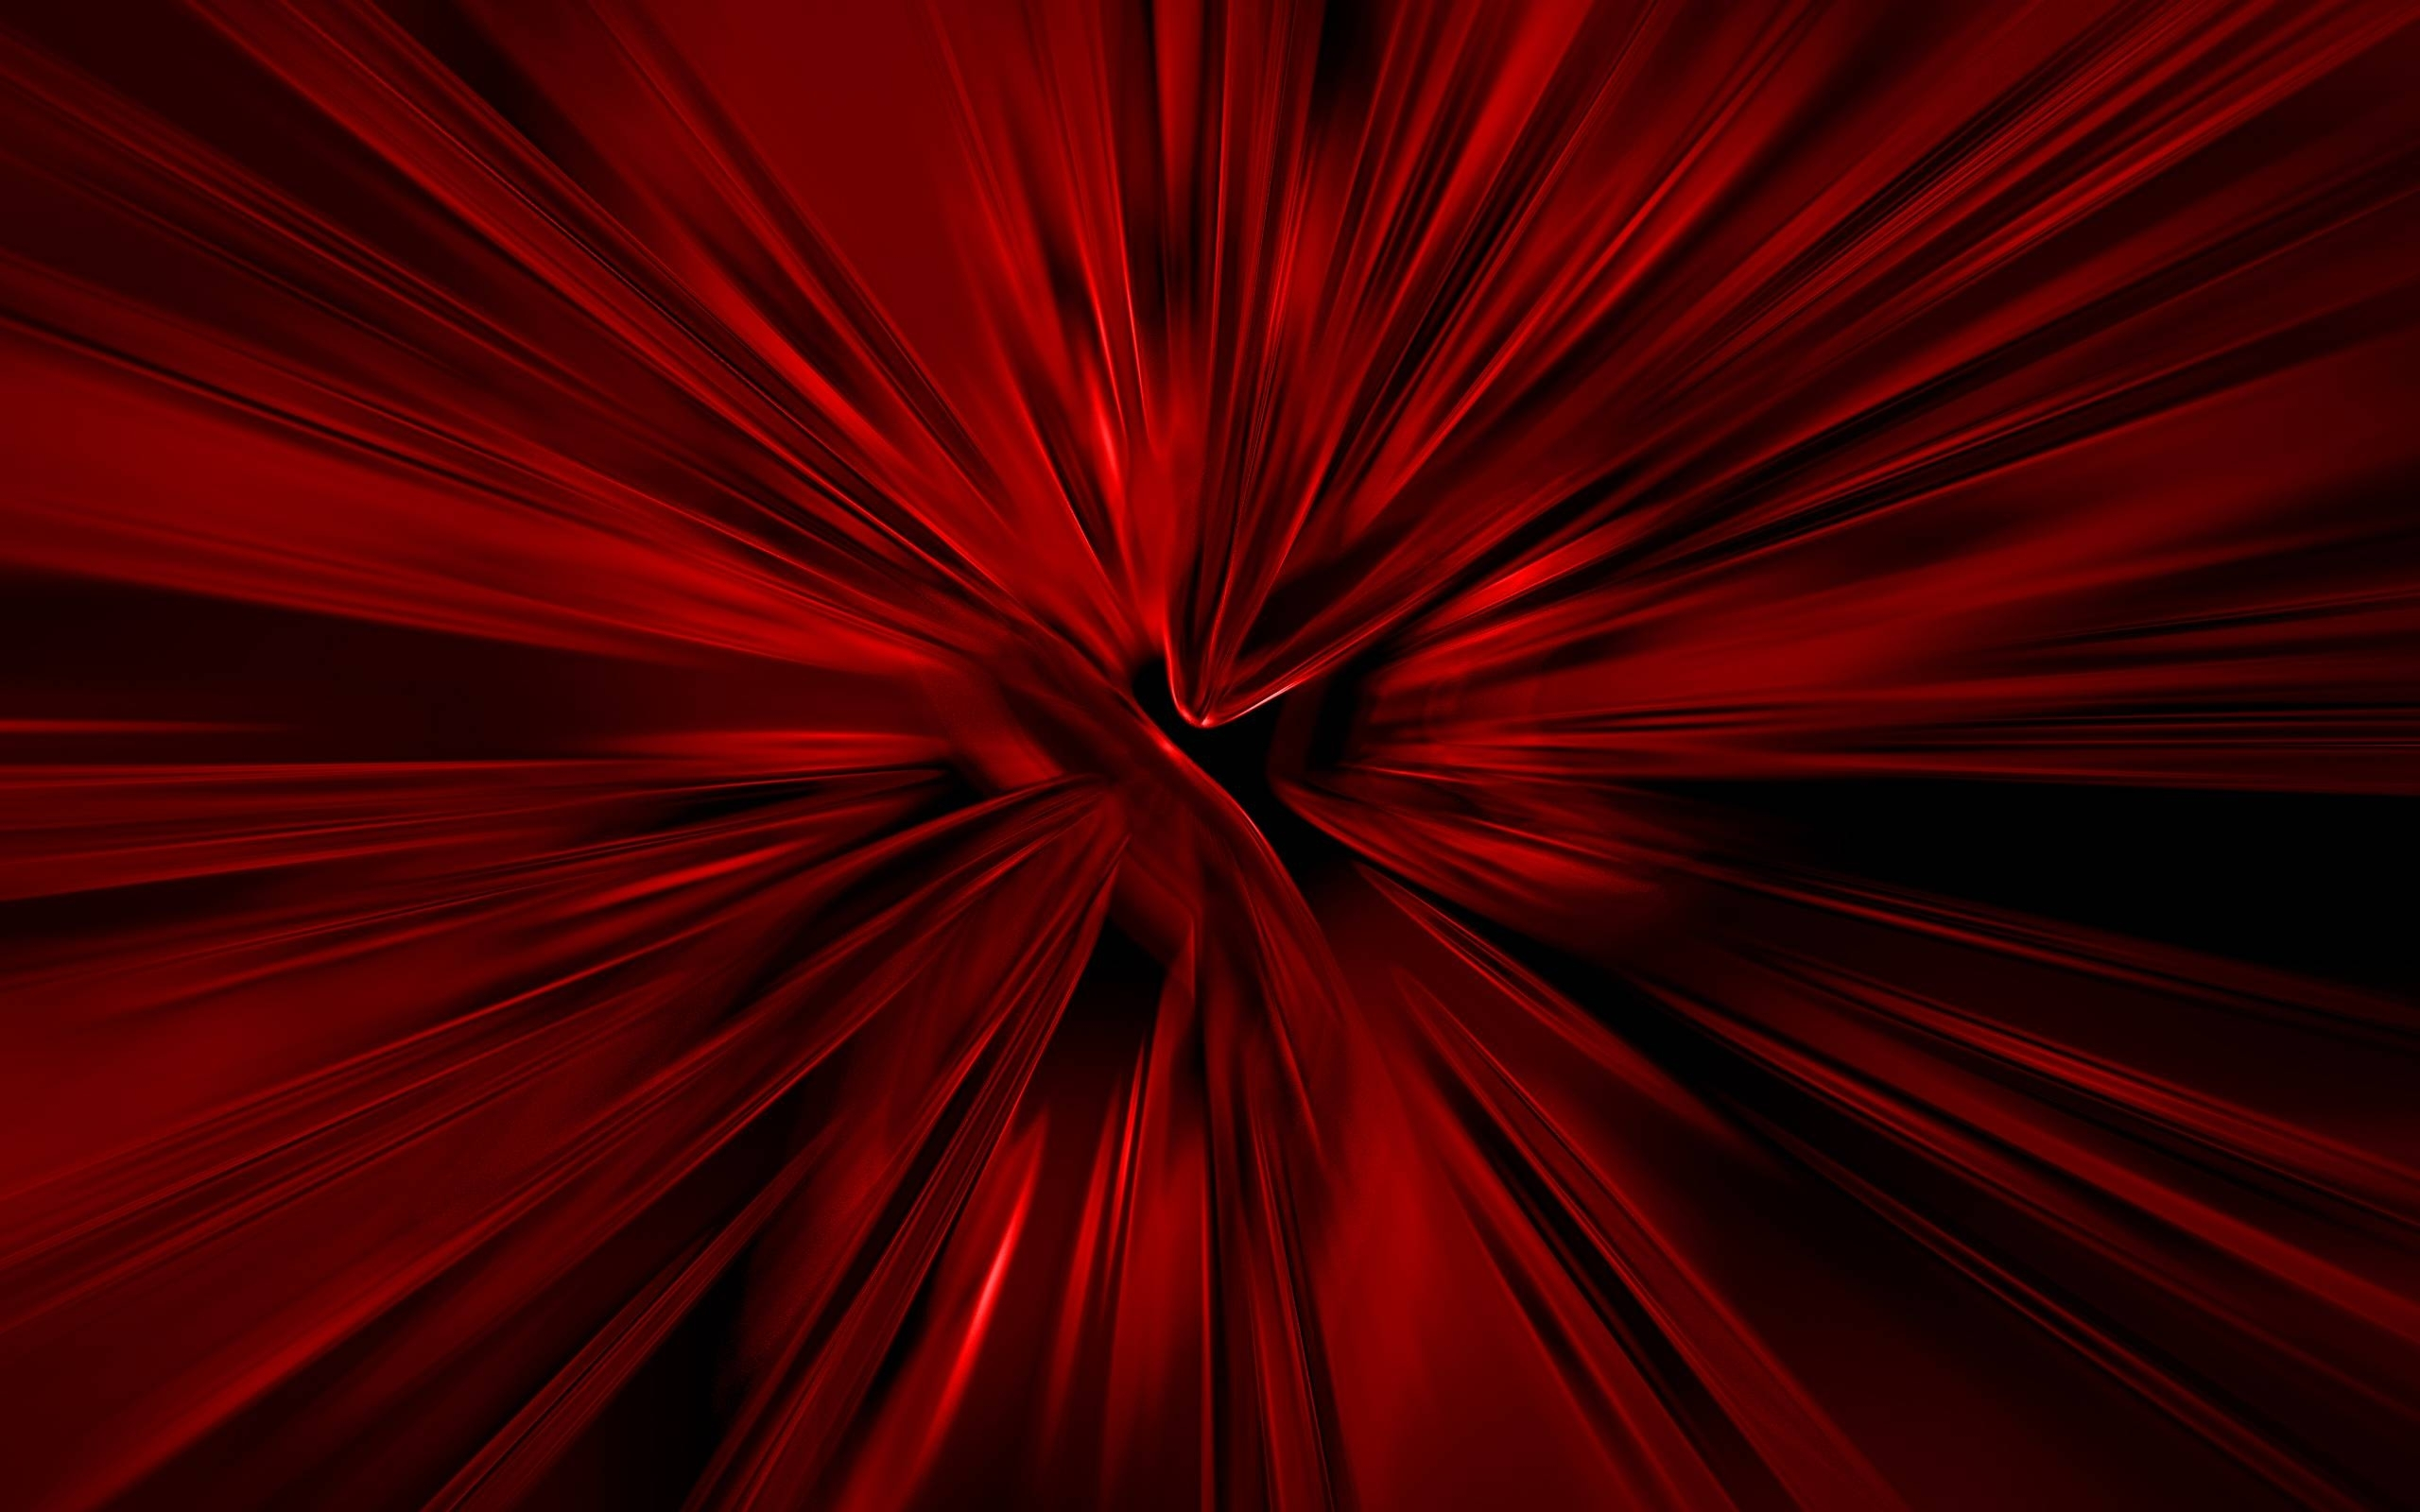 10 Most Popular Red And Black Backgrounds FULL HD 1080p For PC Background